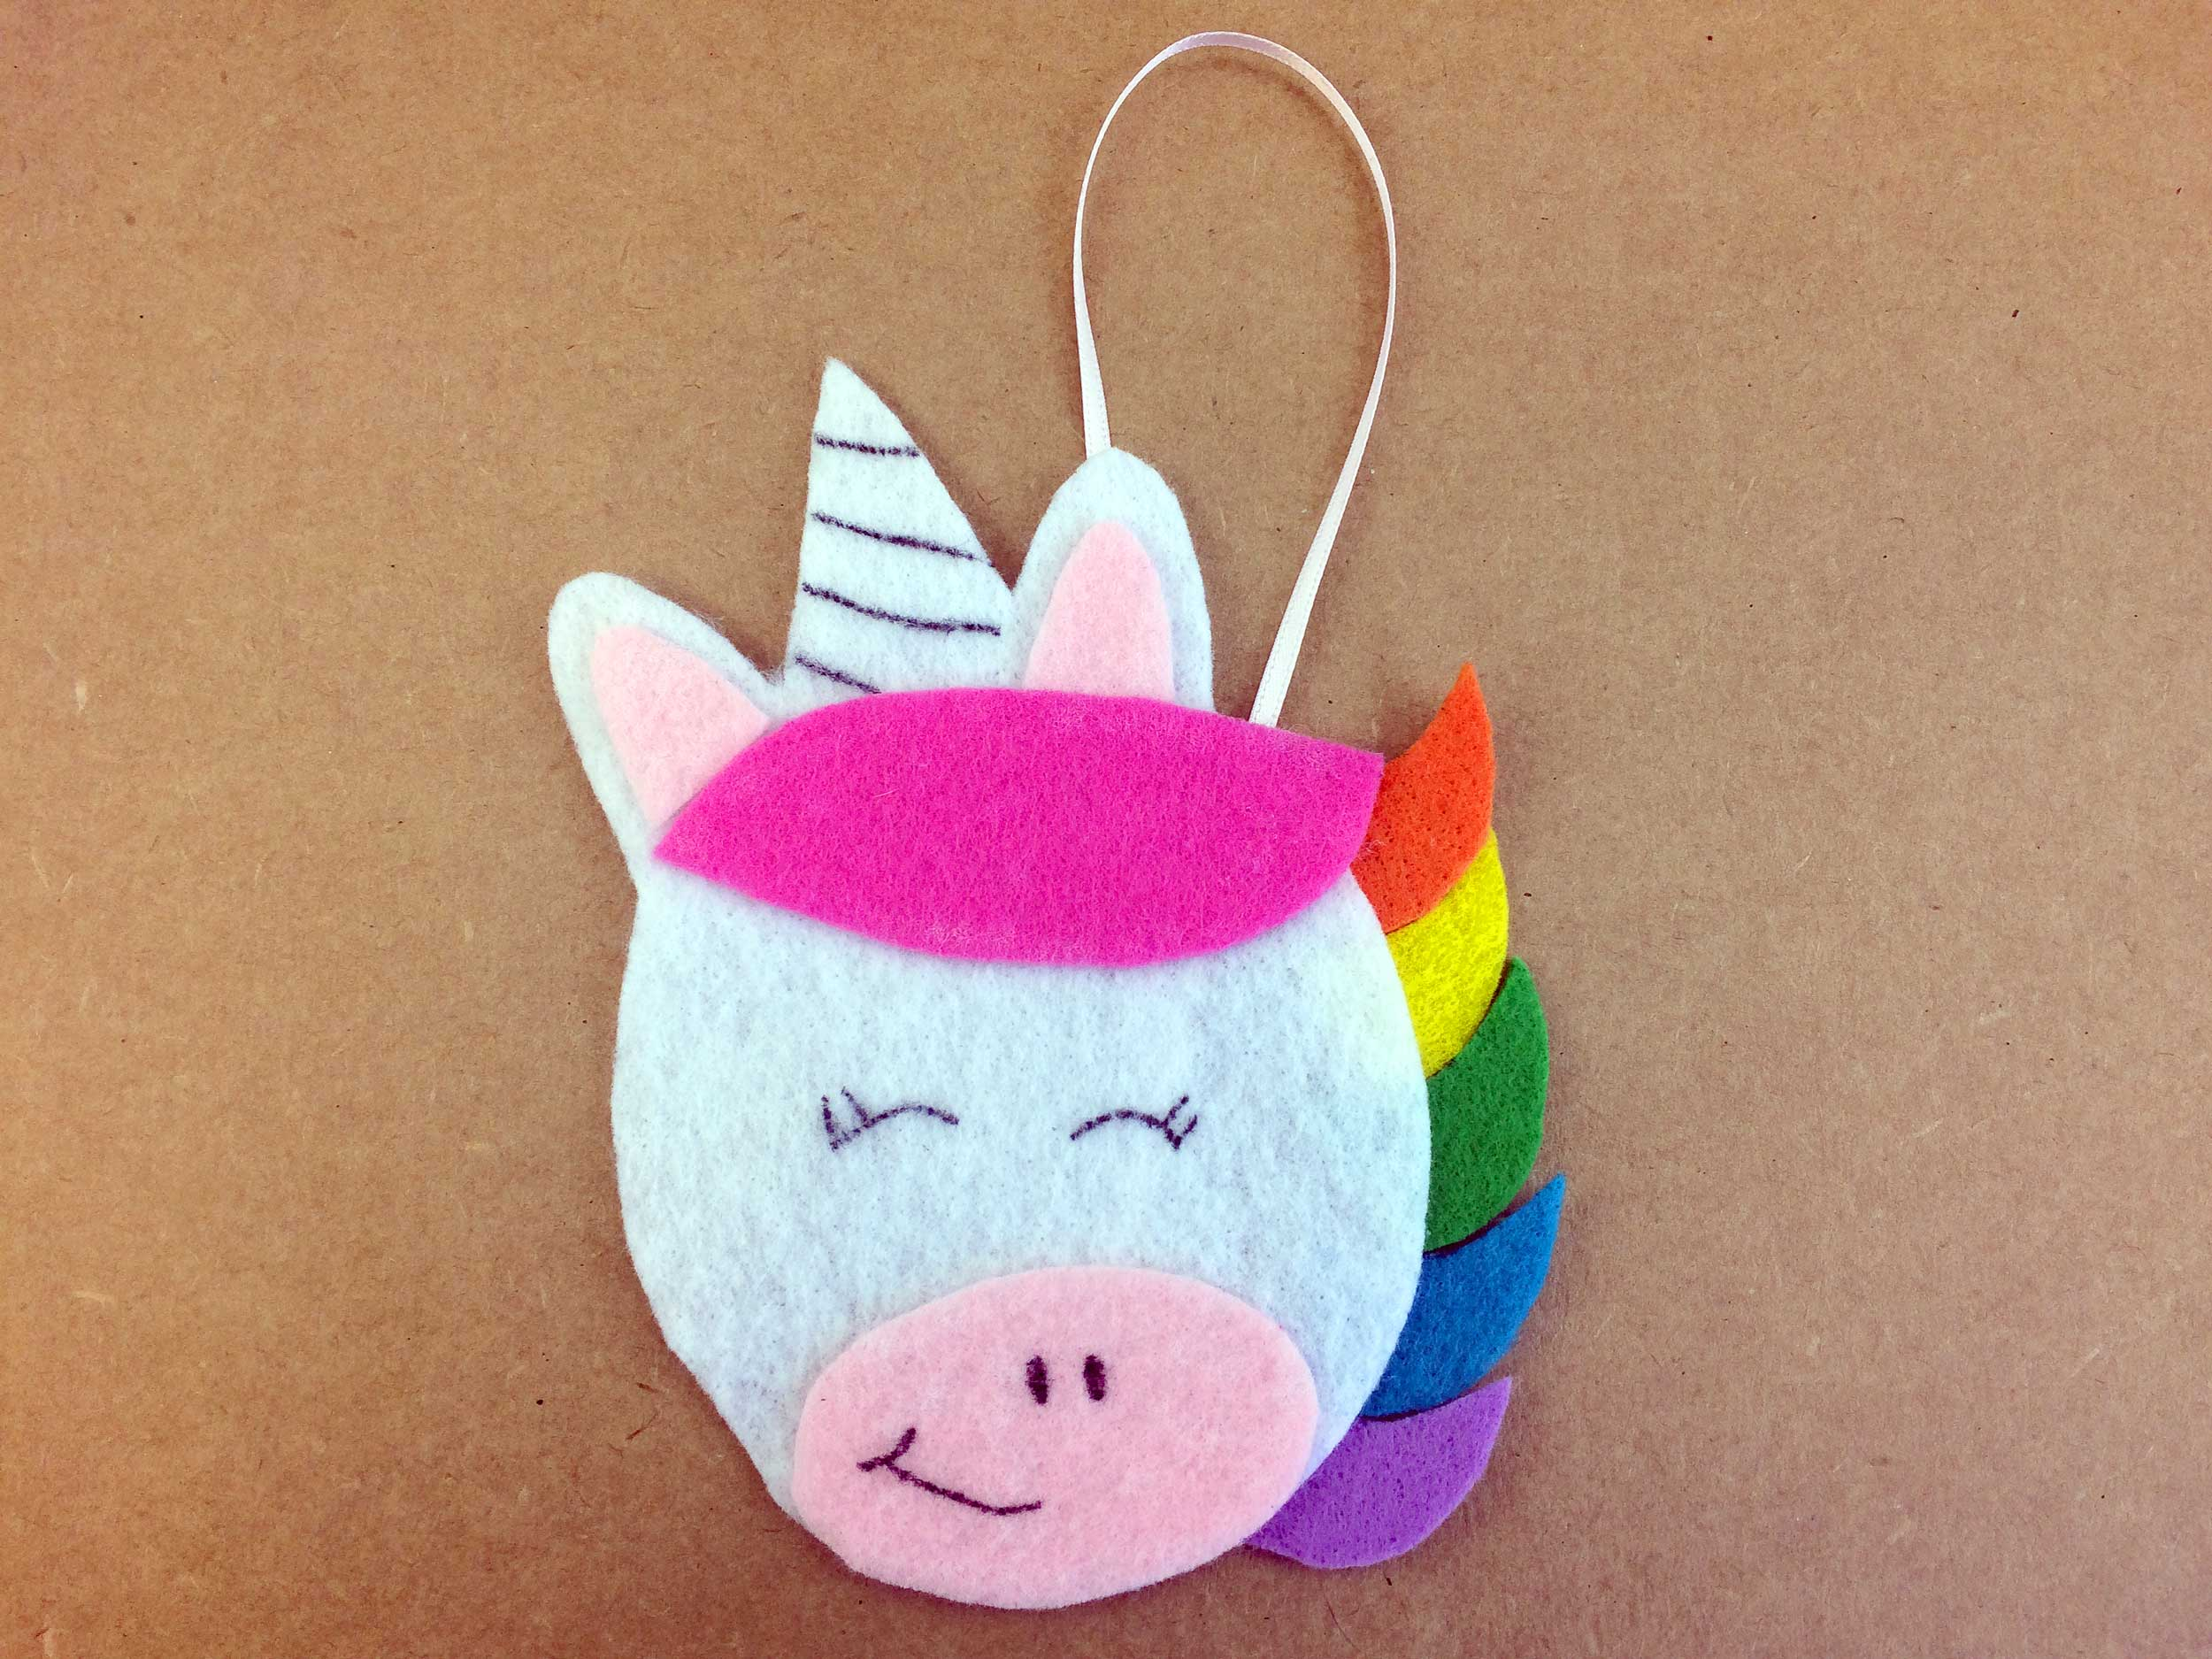 Completed DIY Unicorn Ornament | Ornament Shop